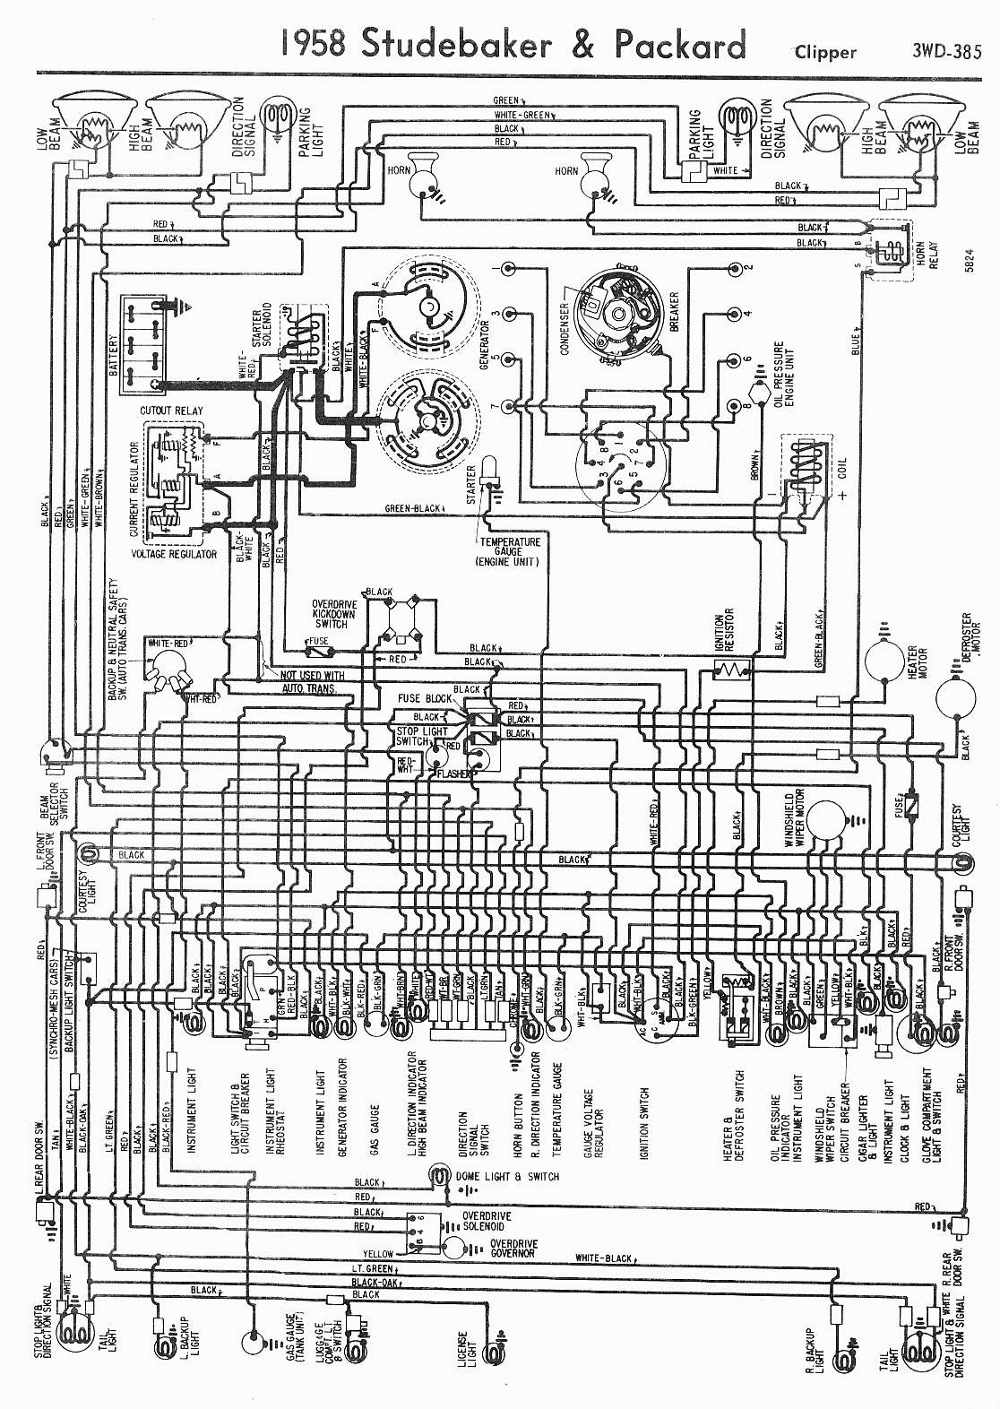 1946 Packard Clipper Wiring Diagram - Electrical Wiring Diagram House •